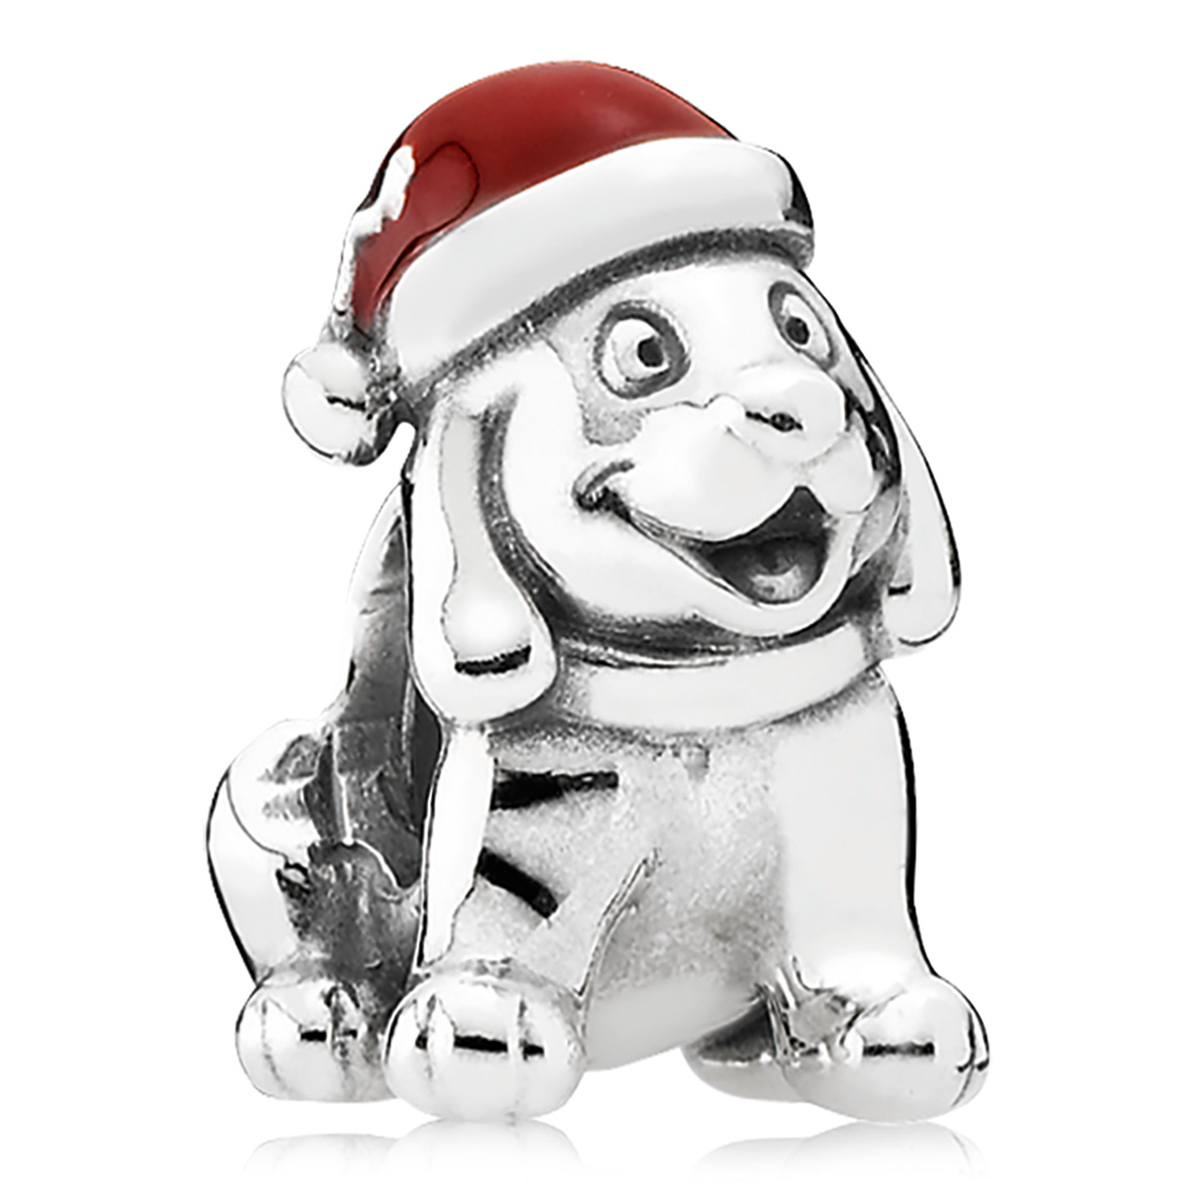 802-3132-PANDORA Christmas Puppy with Red Enamel Charm